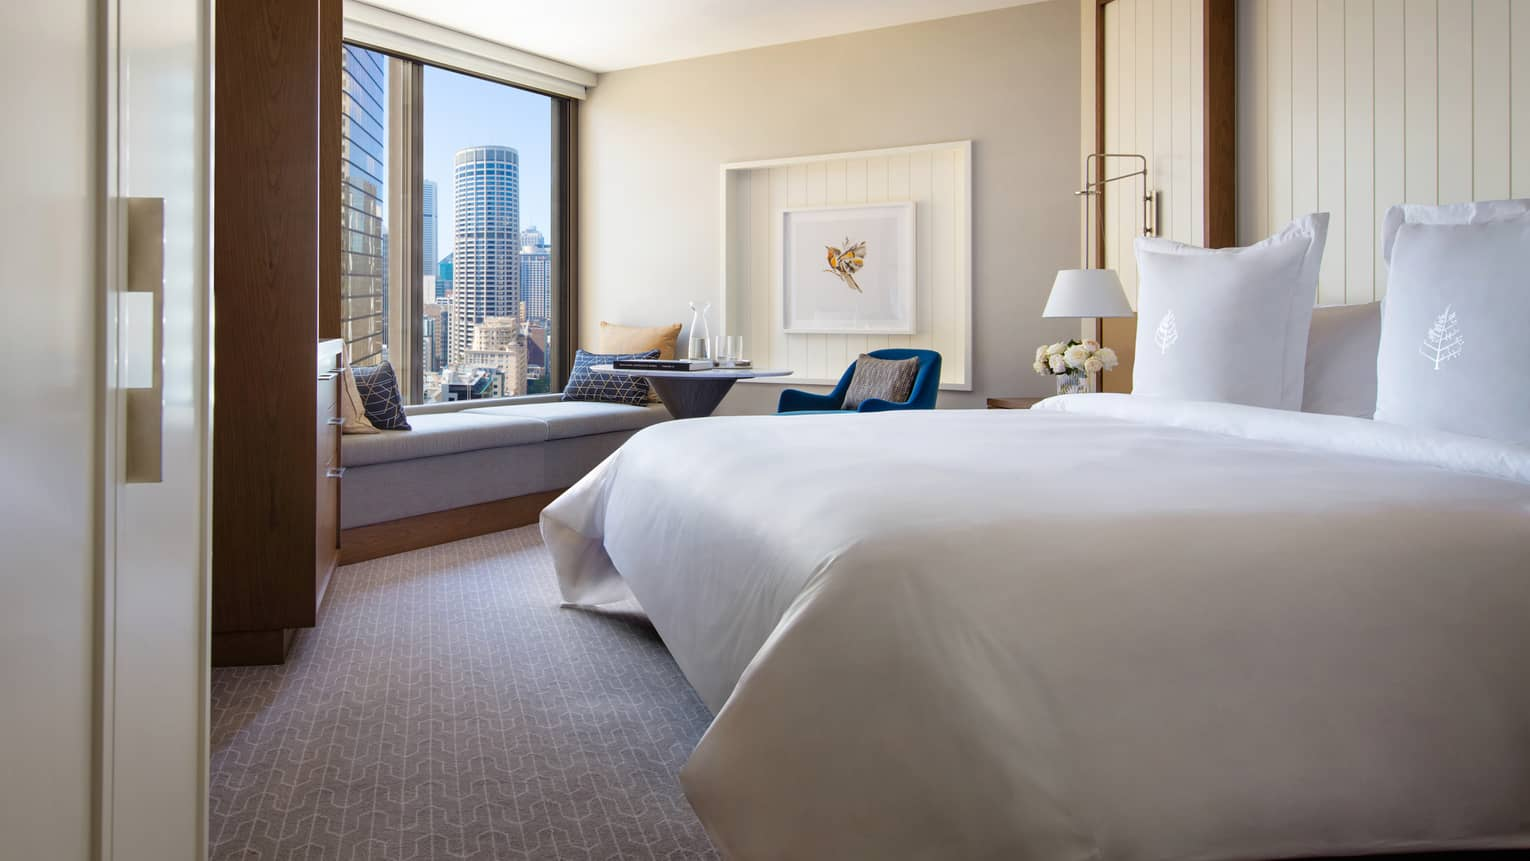 Hotel room with king bed and views of downtown Sydney